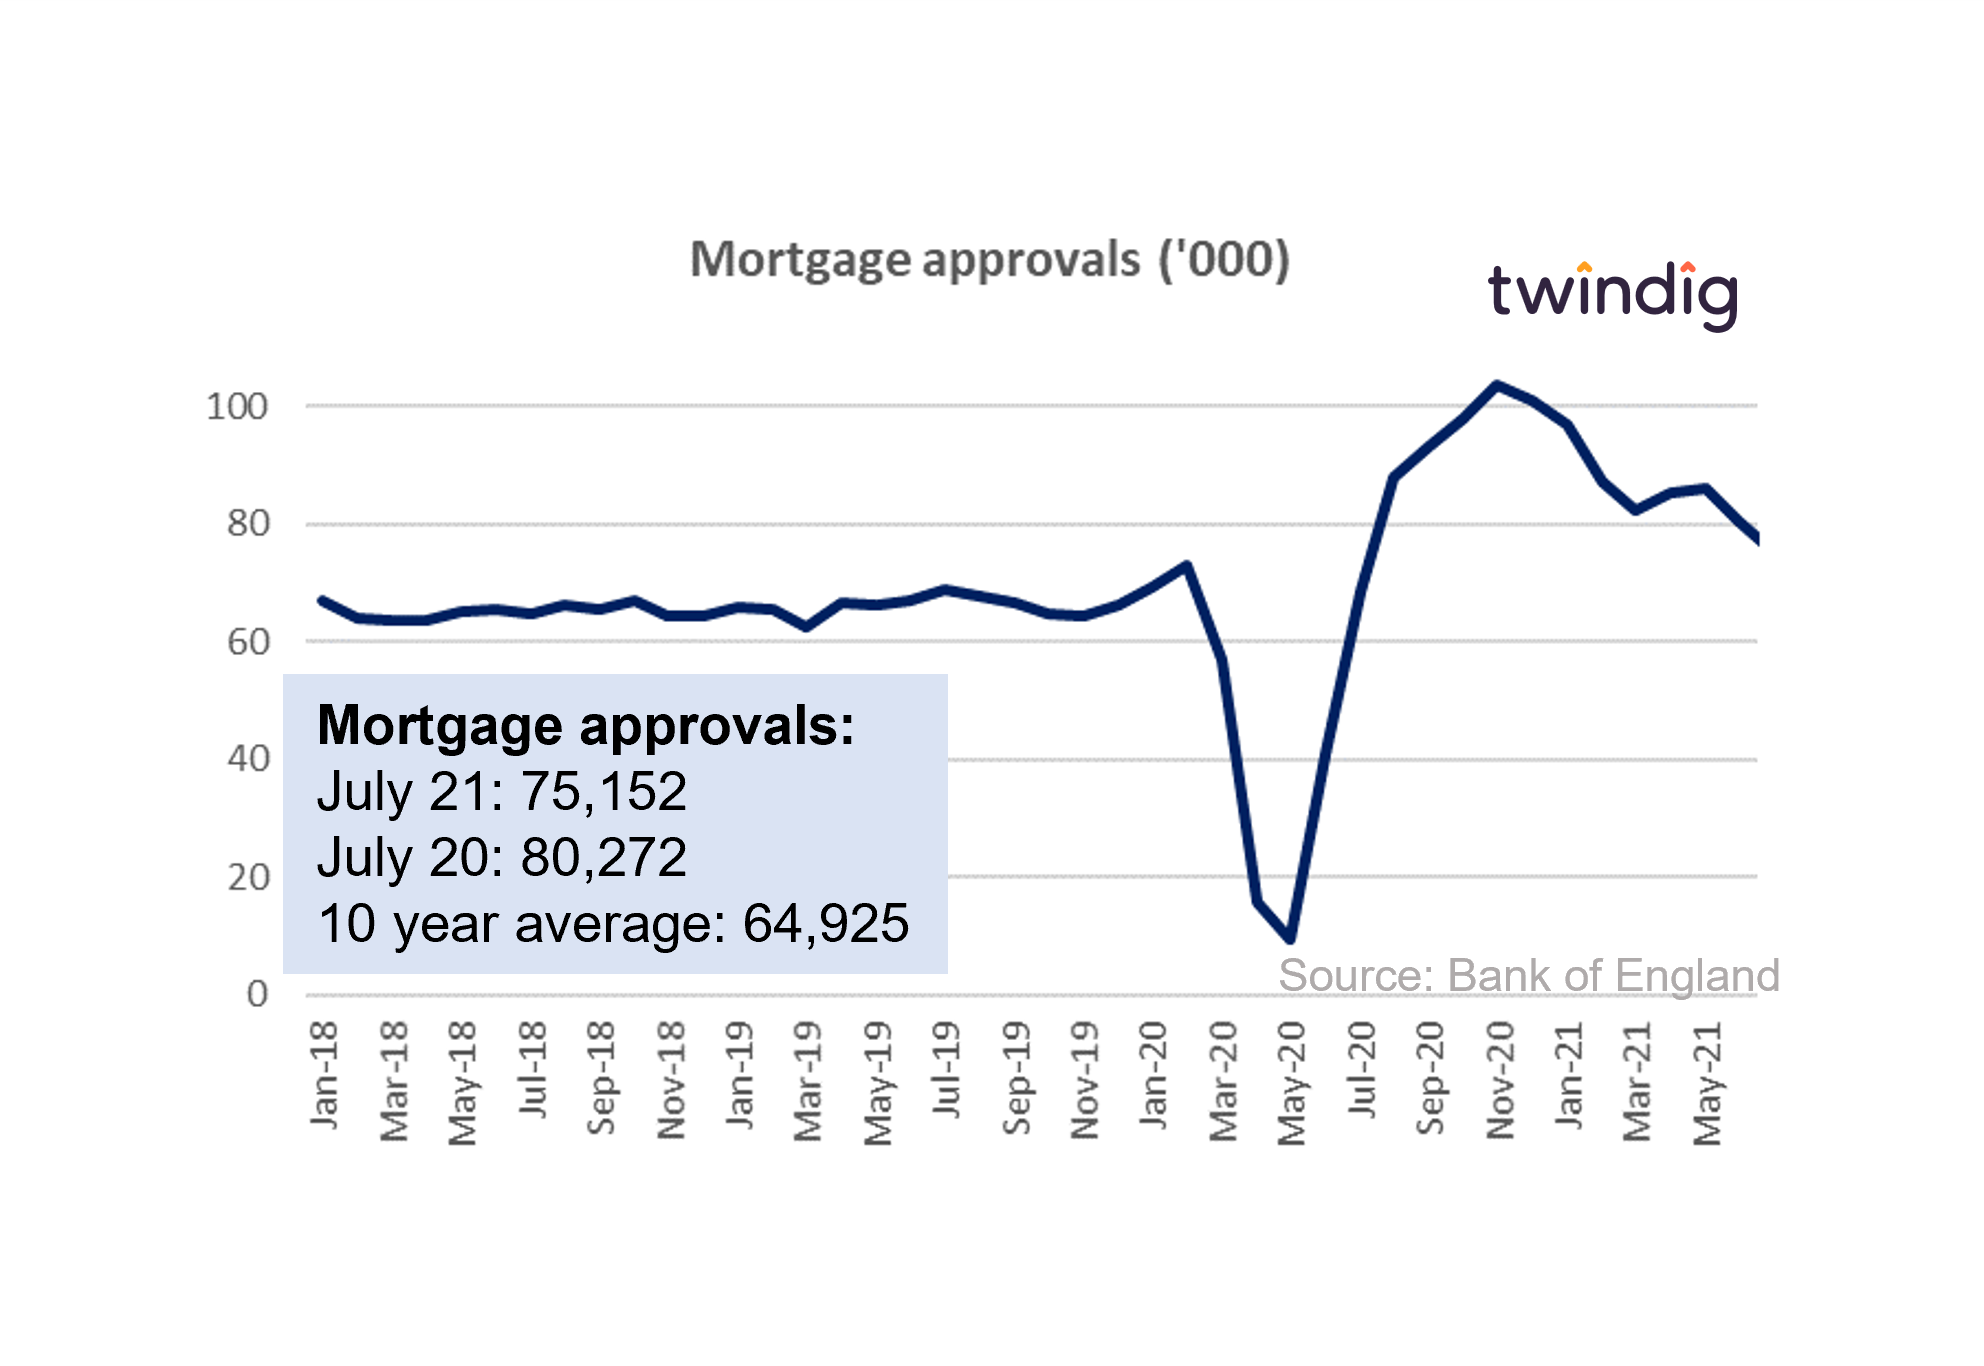 graph chart uk mortgage approvals july 2021 twindig anthony codling